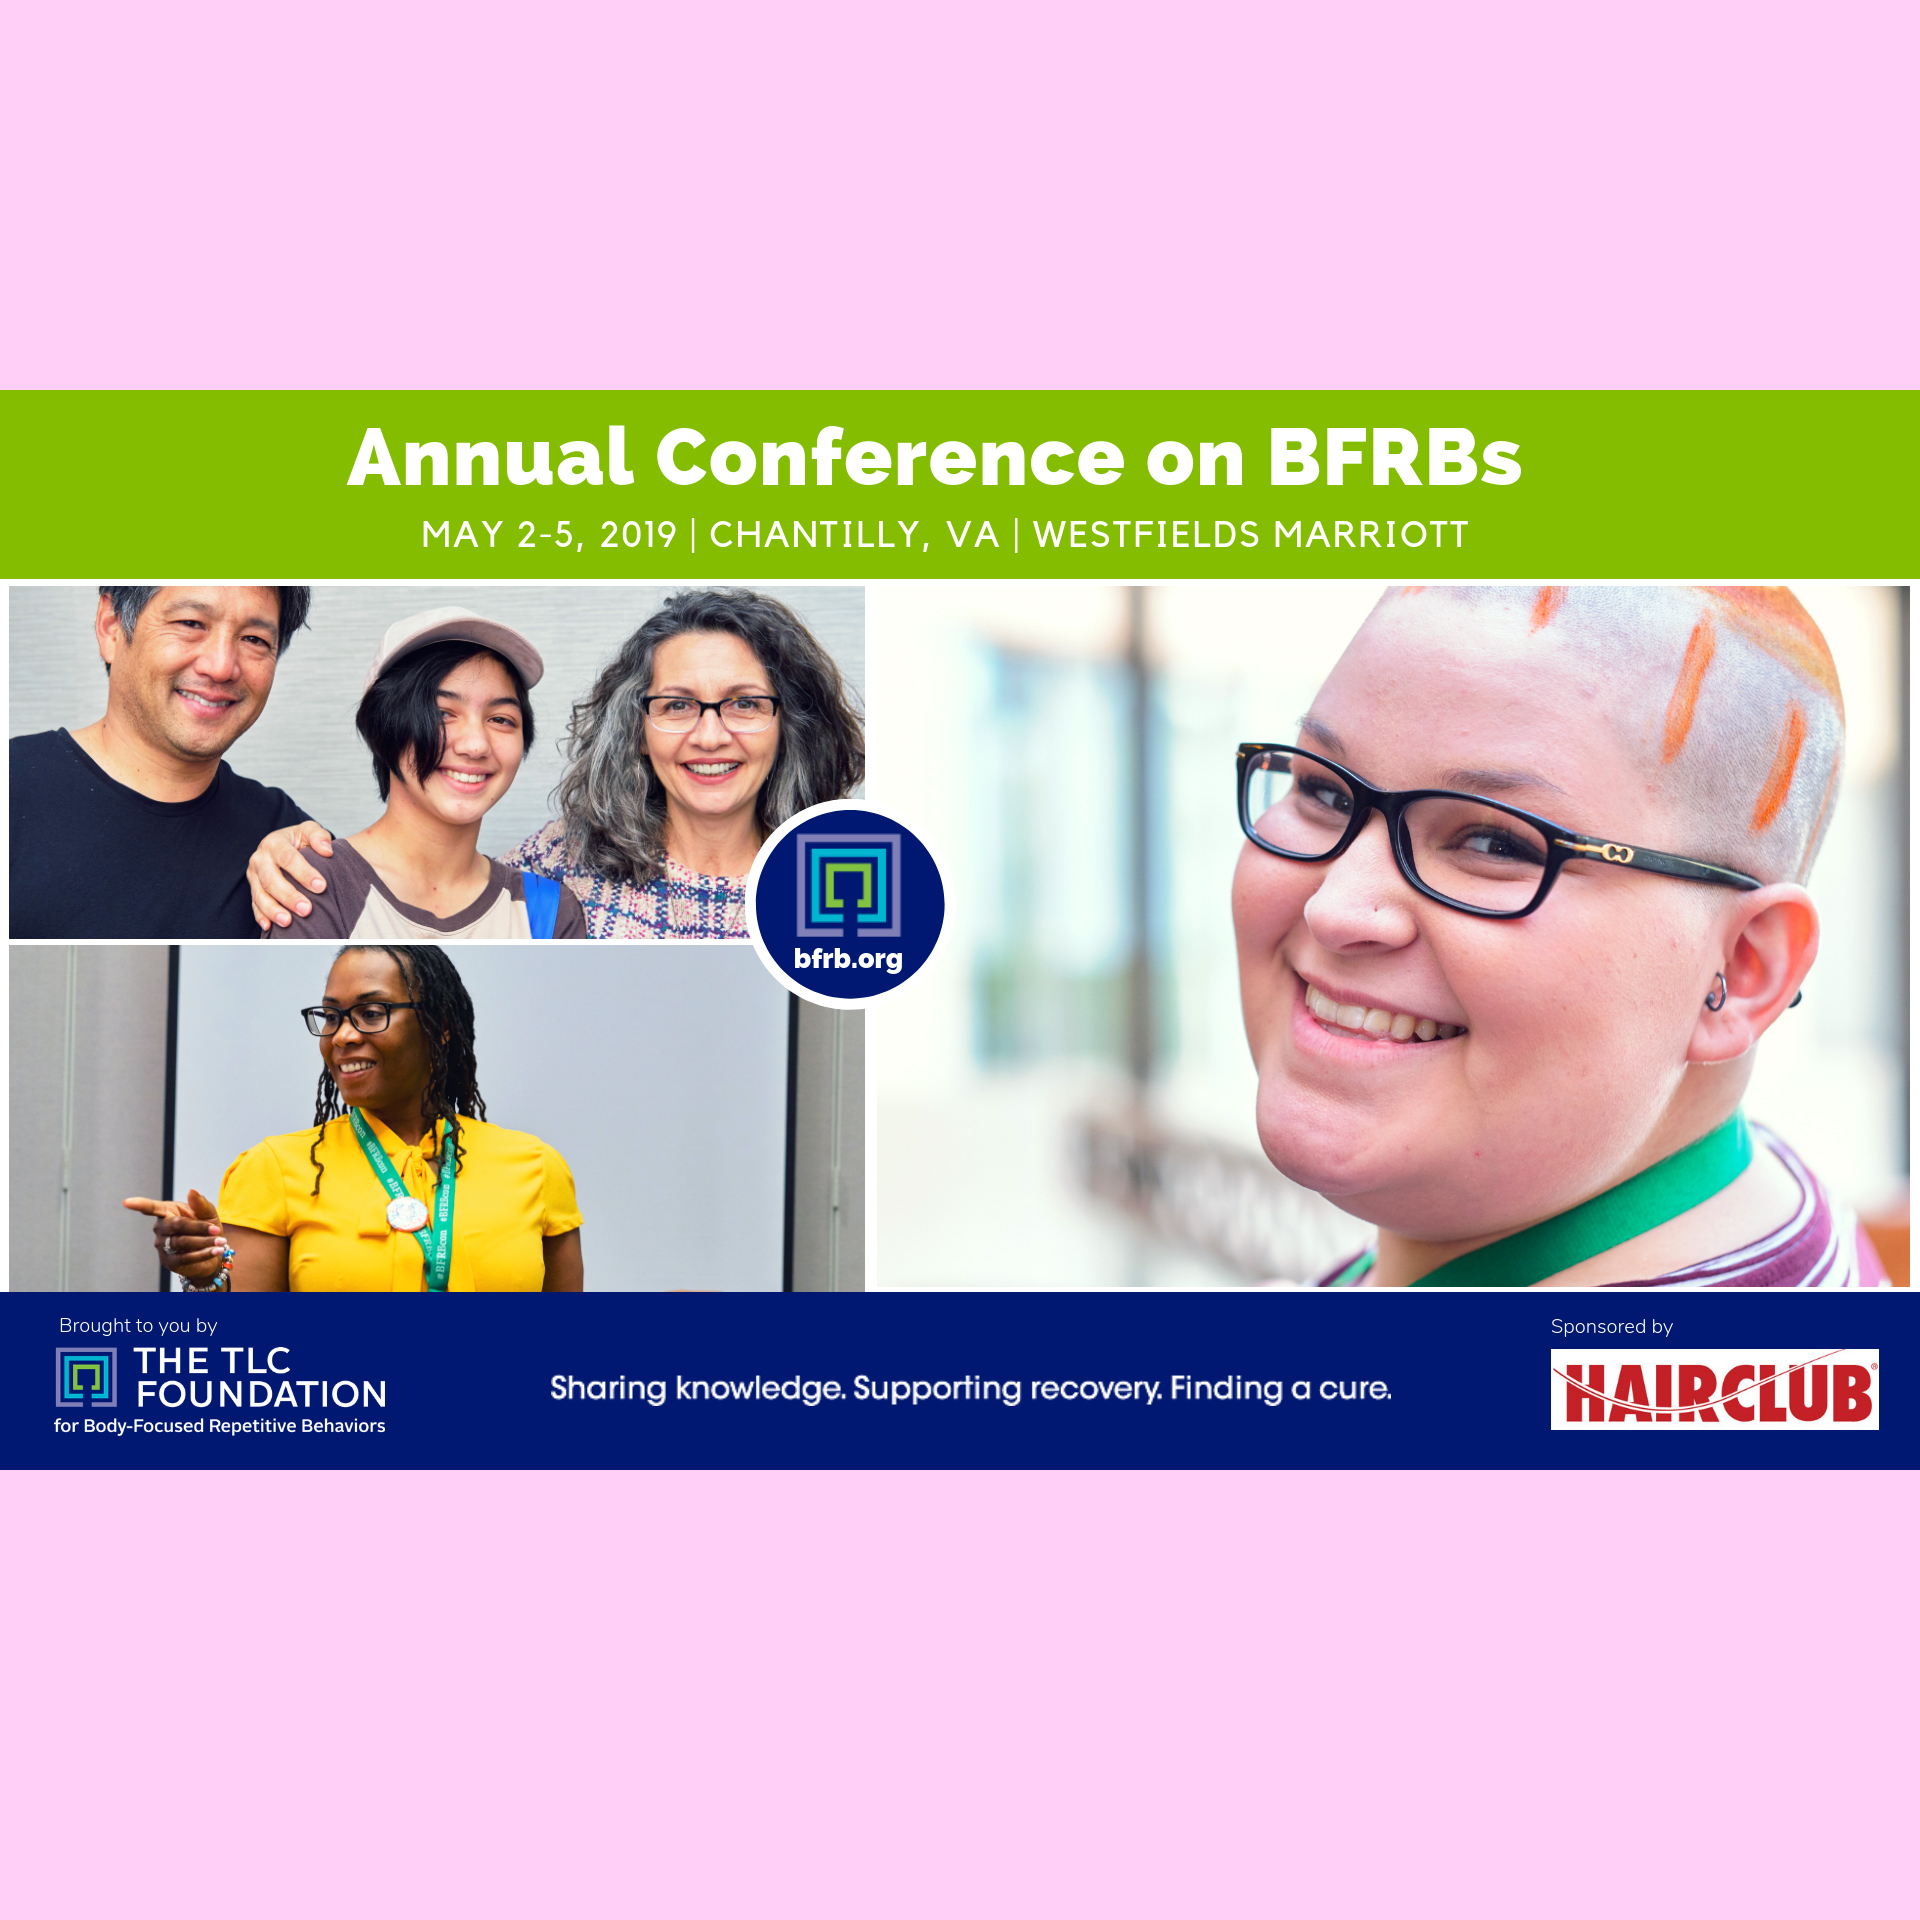 TLC Annual Conference On BFRBs